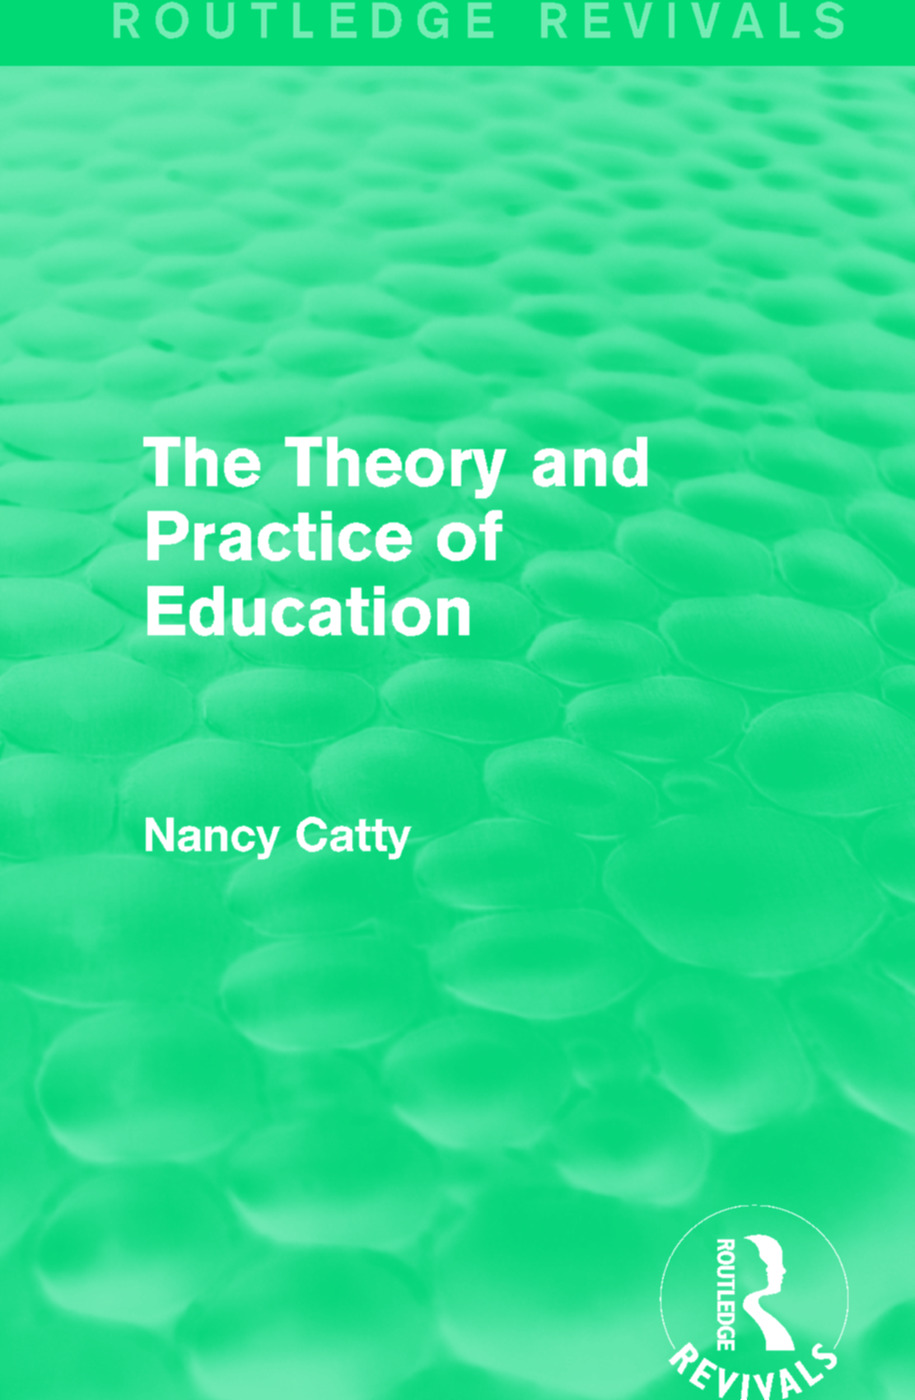 The Theory and Practice of Education (1934)